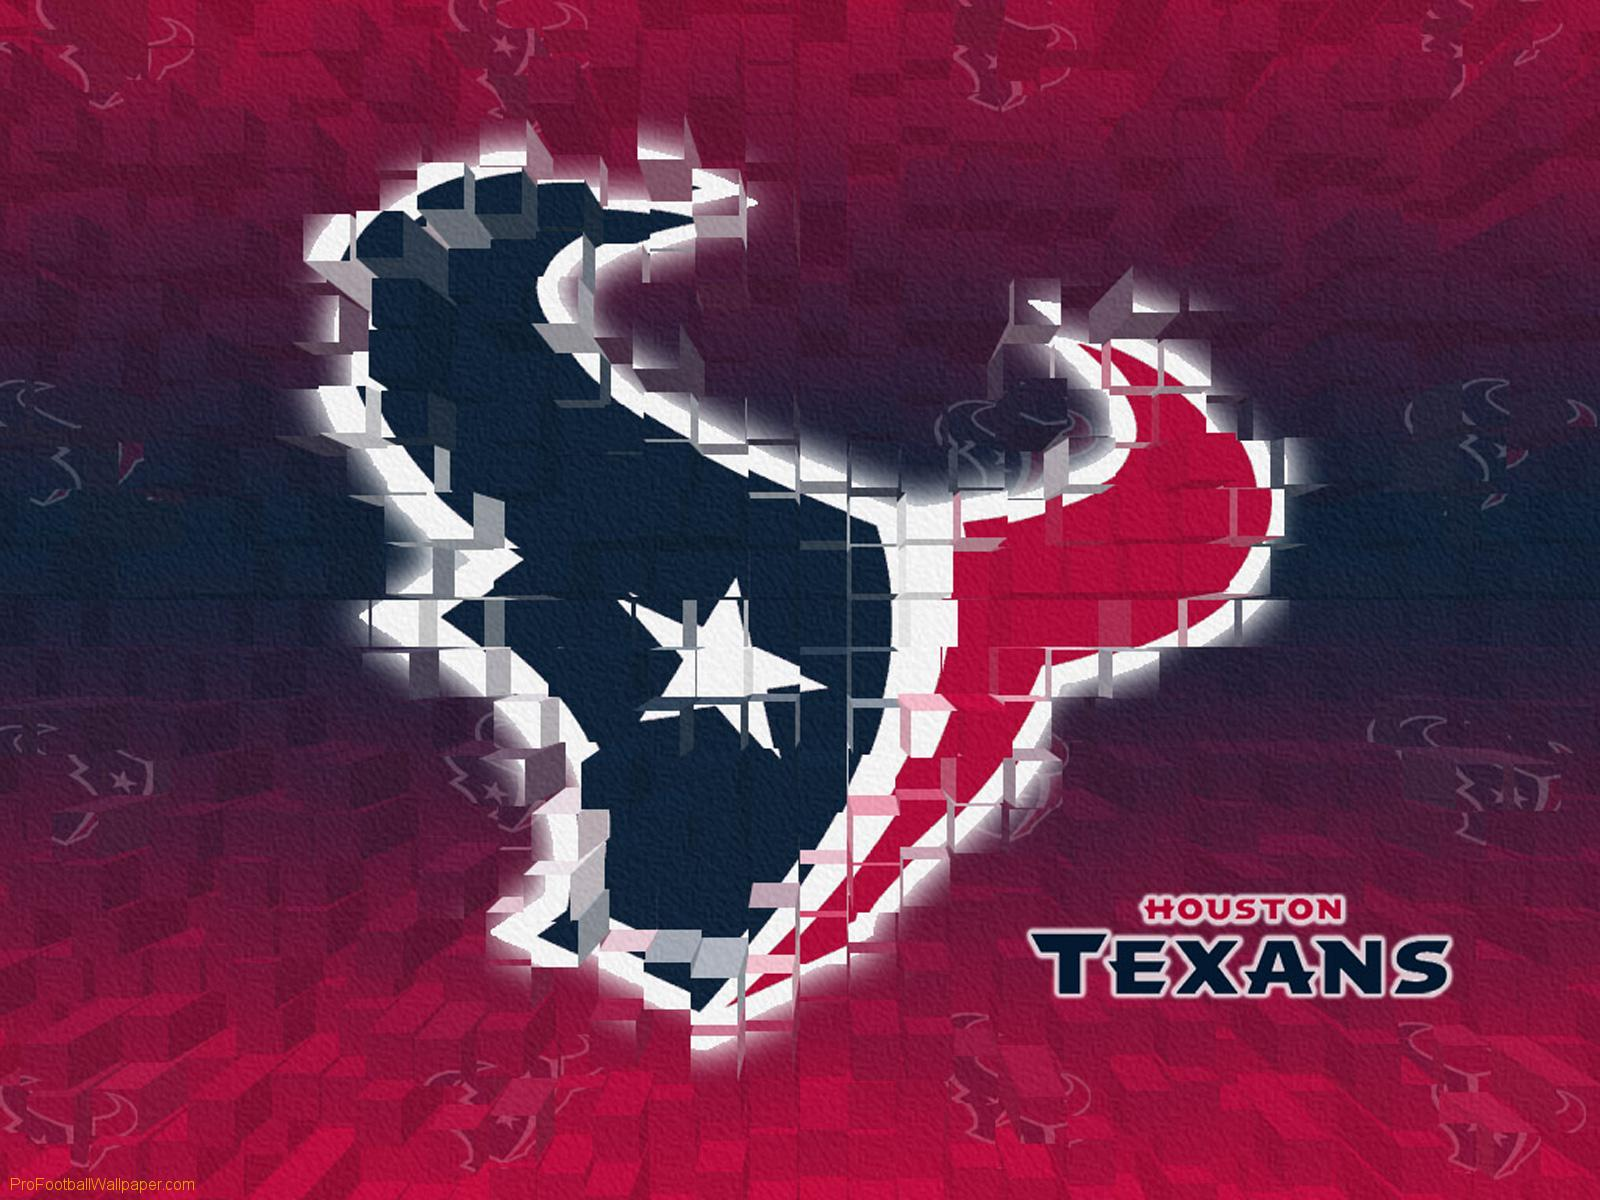 Download Houston Texans wallpaper Houston Texans 3D 1600x1200